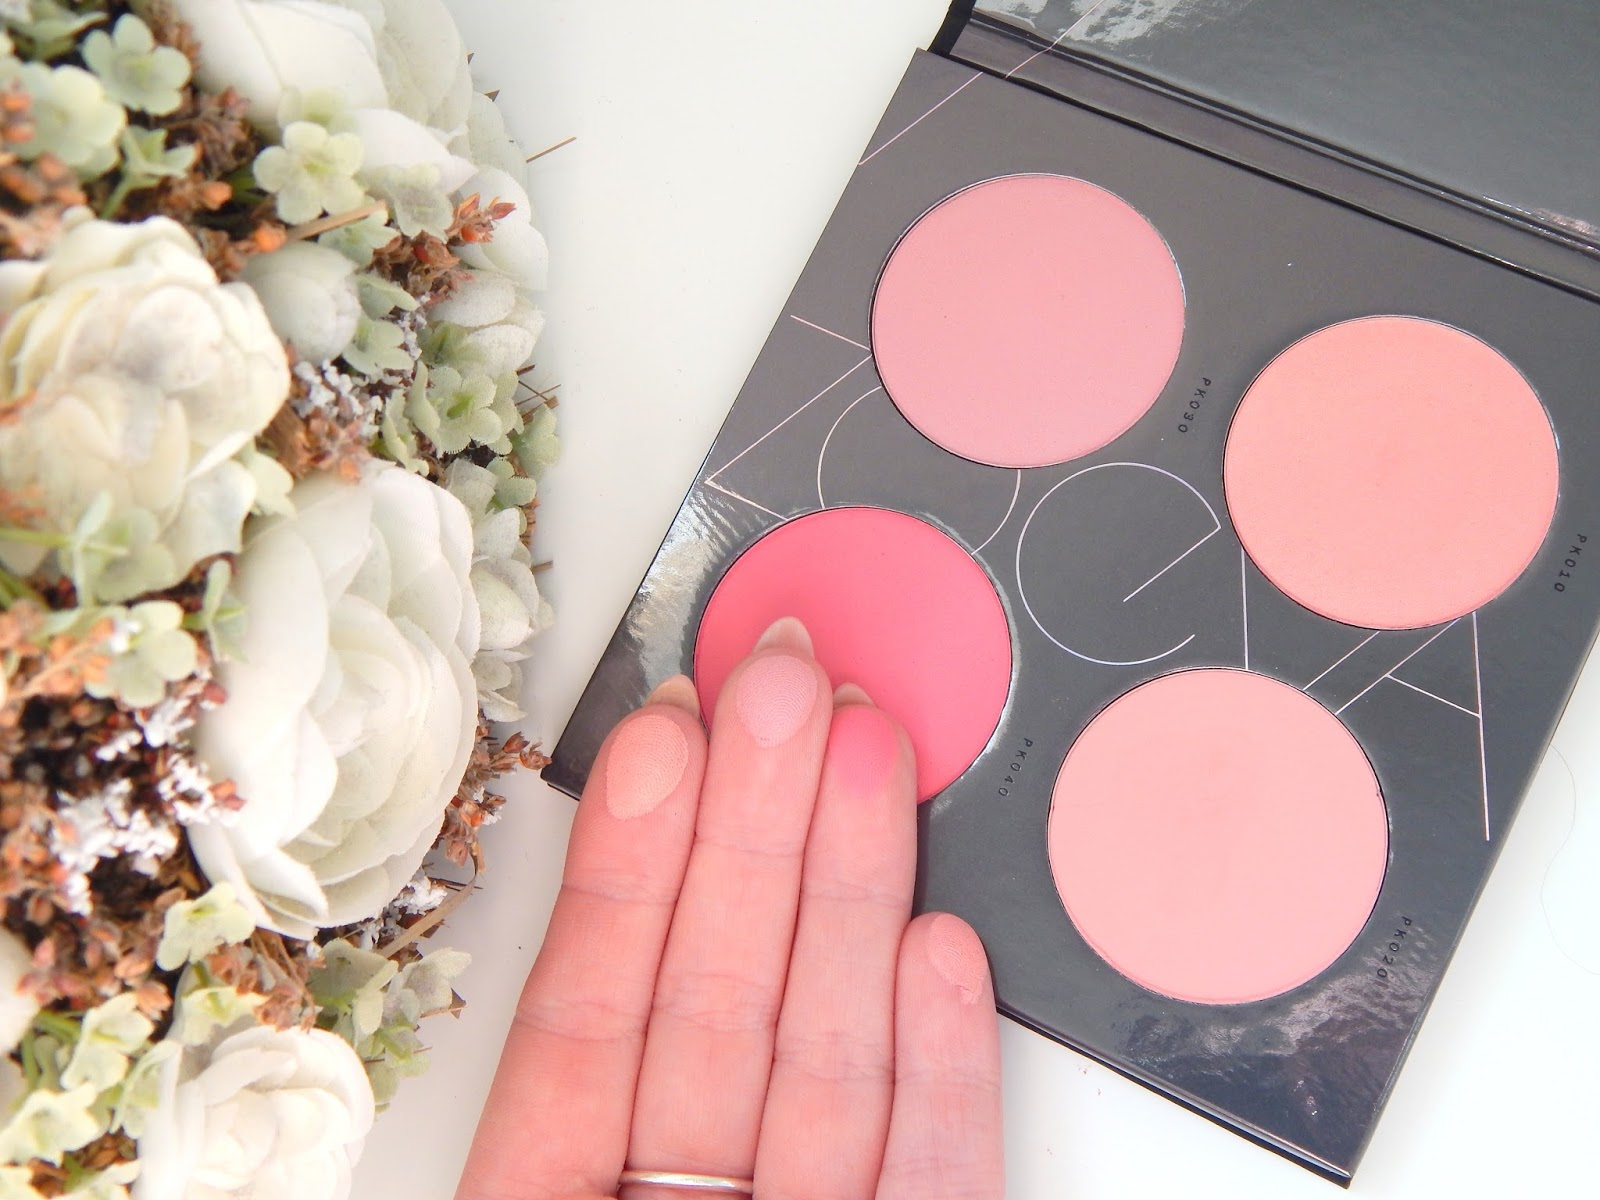 Zoeva Pink Spectrum Blush Palette Swatches